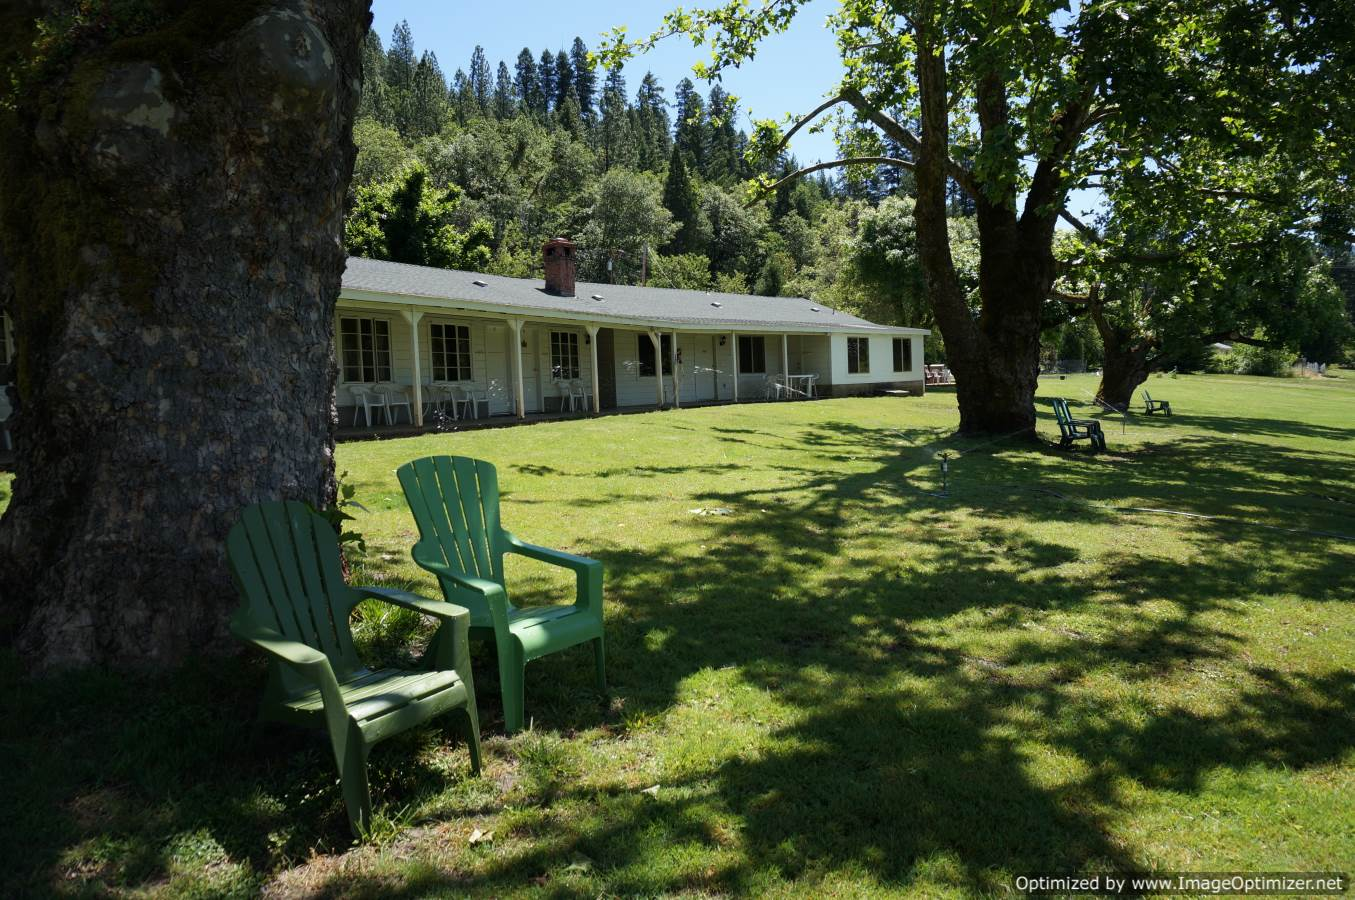 California Riverfront Hotels and Motels for sale, Siskiyou County